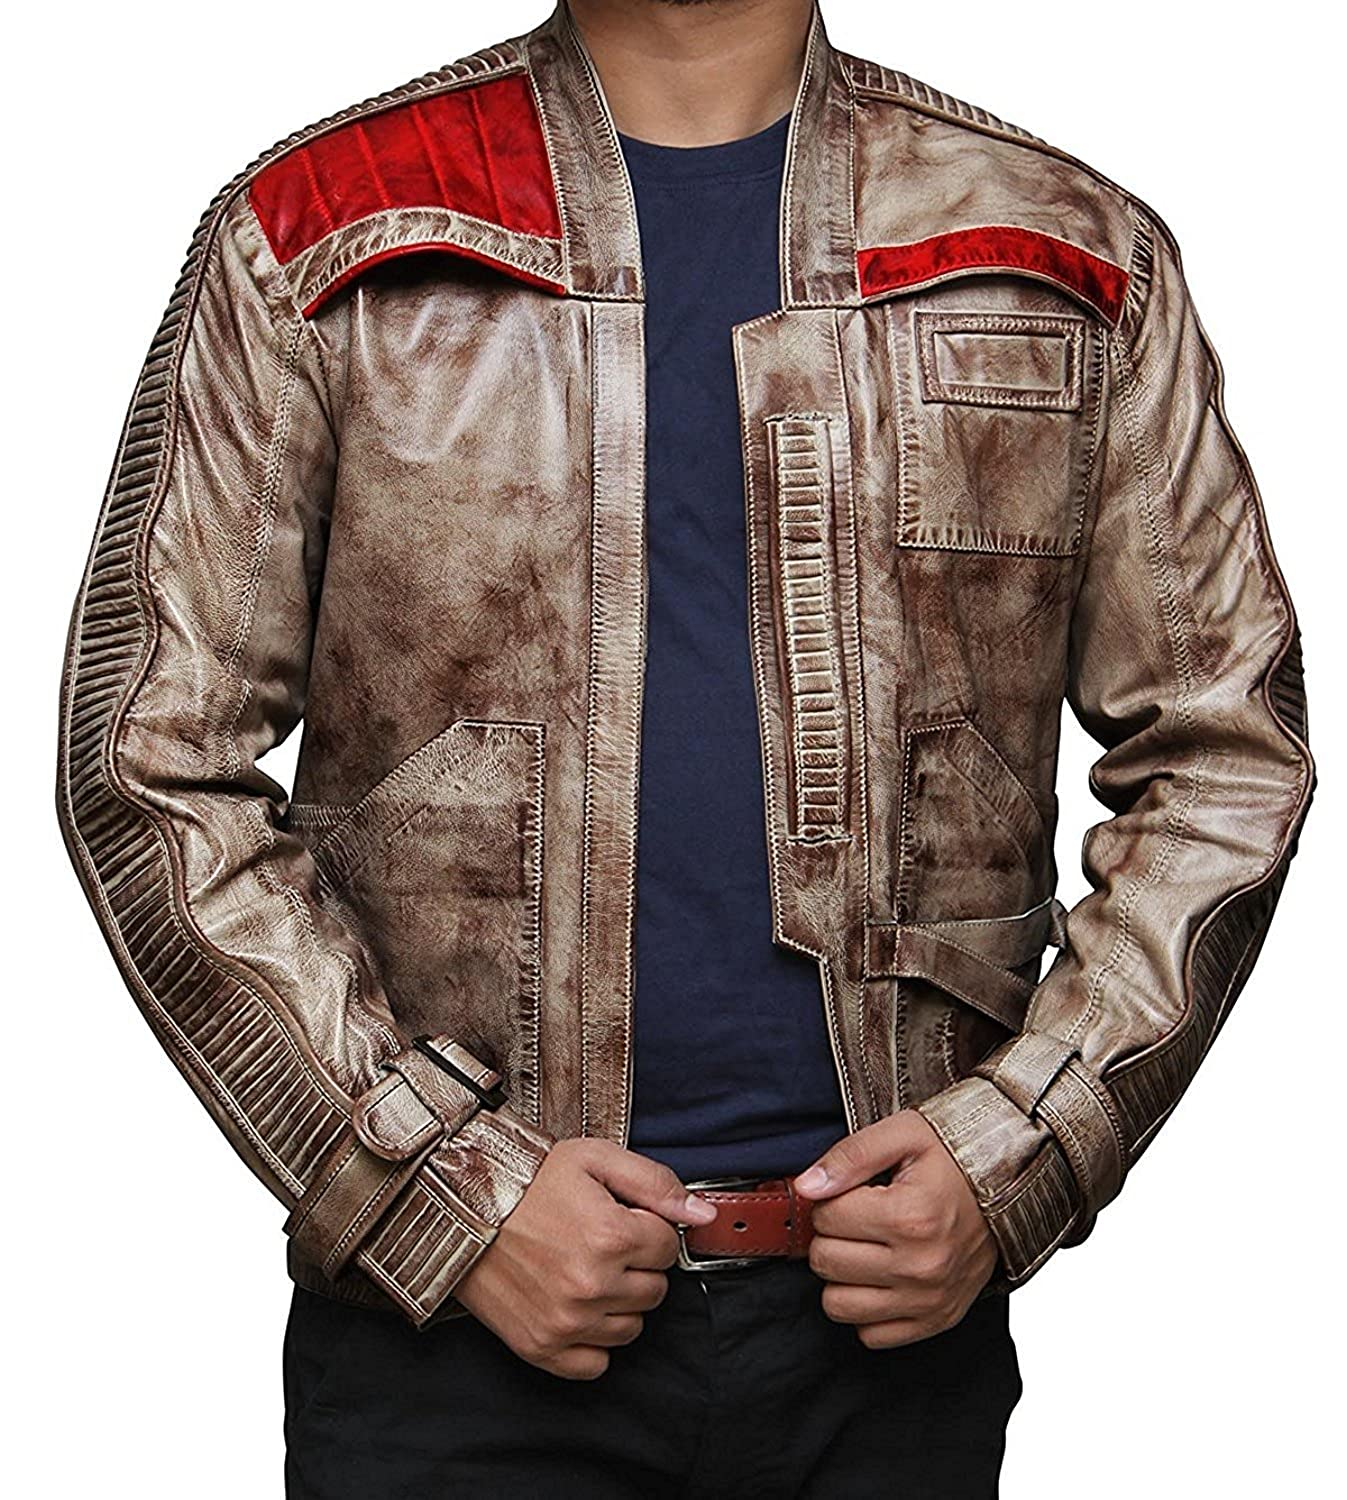 Star Wars Force Awakens Finn Jacket Costume - John Poyega Poe Dameron Pilot Jacket